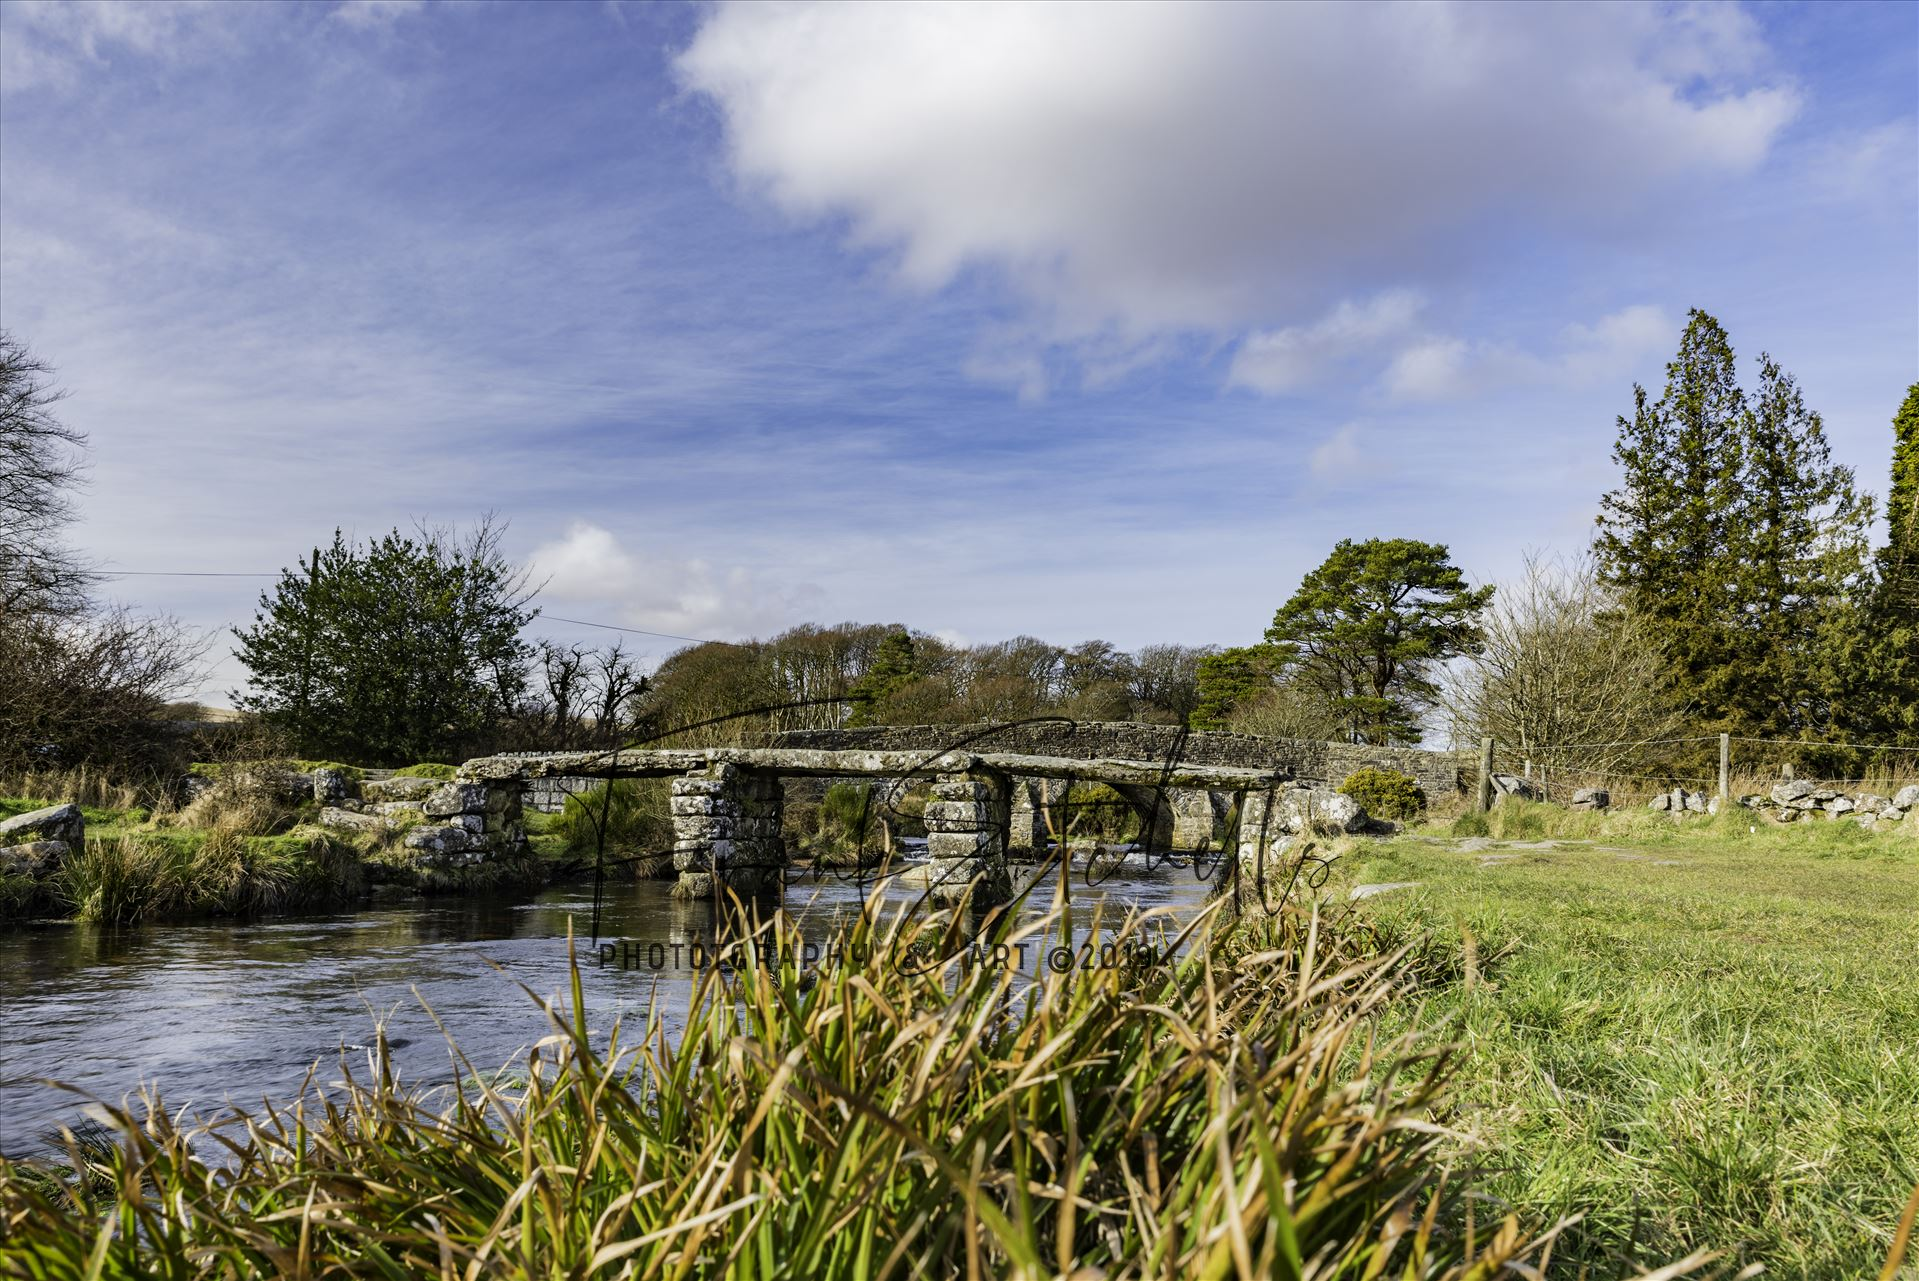 Postbridge Clapper Bridge 1 - A view of the 'Clapper Bridge' at Postbridge in the Dartmoor National Park on a cold February day visit. by Frank Etchells Photography